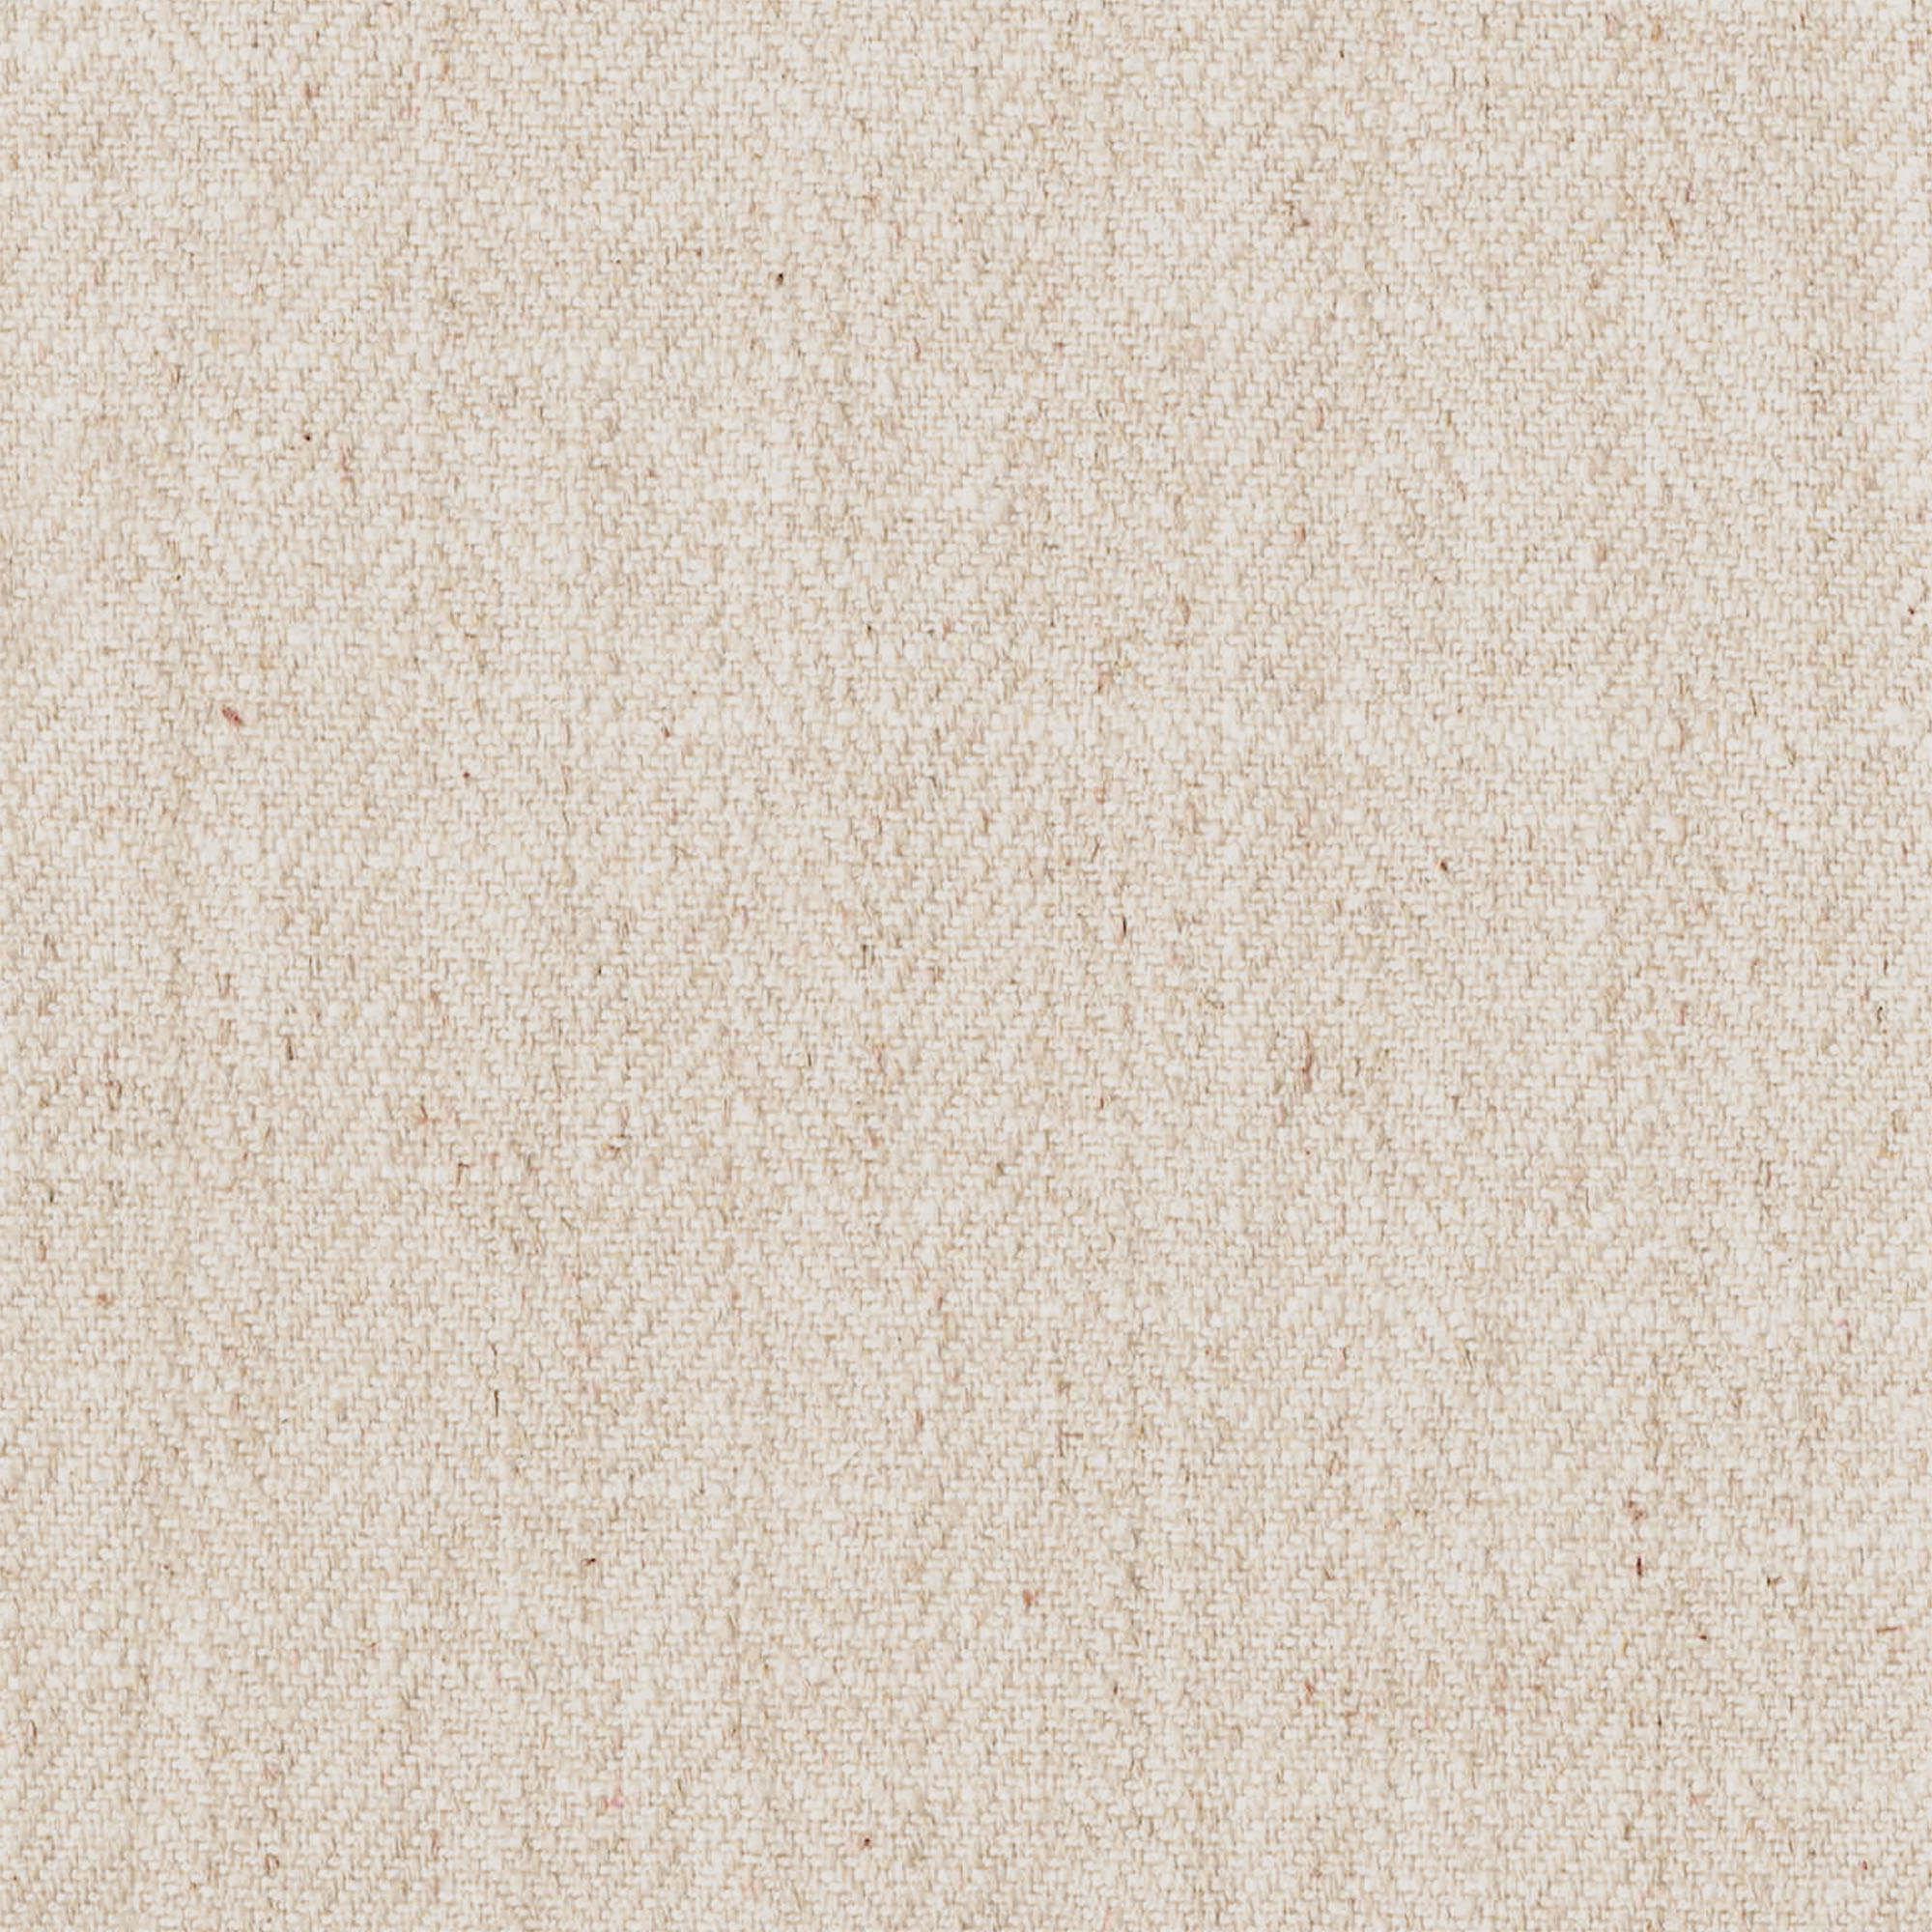 "Gir Ivory Cotton Linen Fabric Swatch 6"" x 6"""